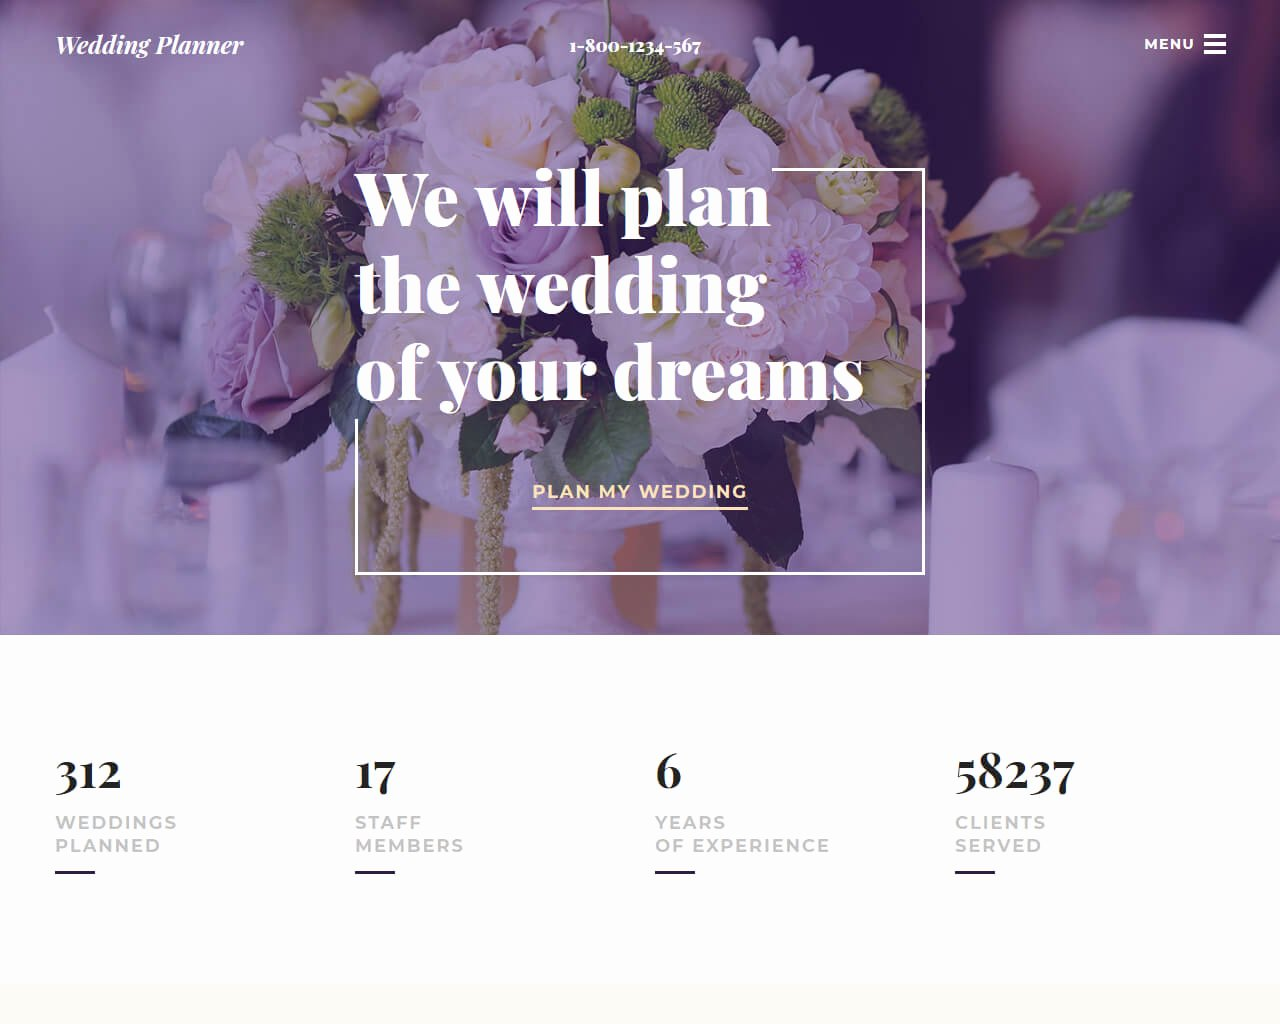 Wedding Planner Website Template Lovely 20 Best Wedding Website Templates for Your Special Day 2018